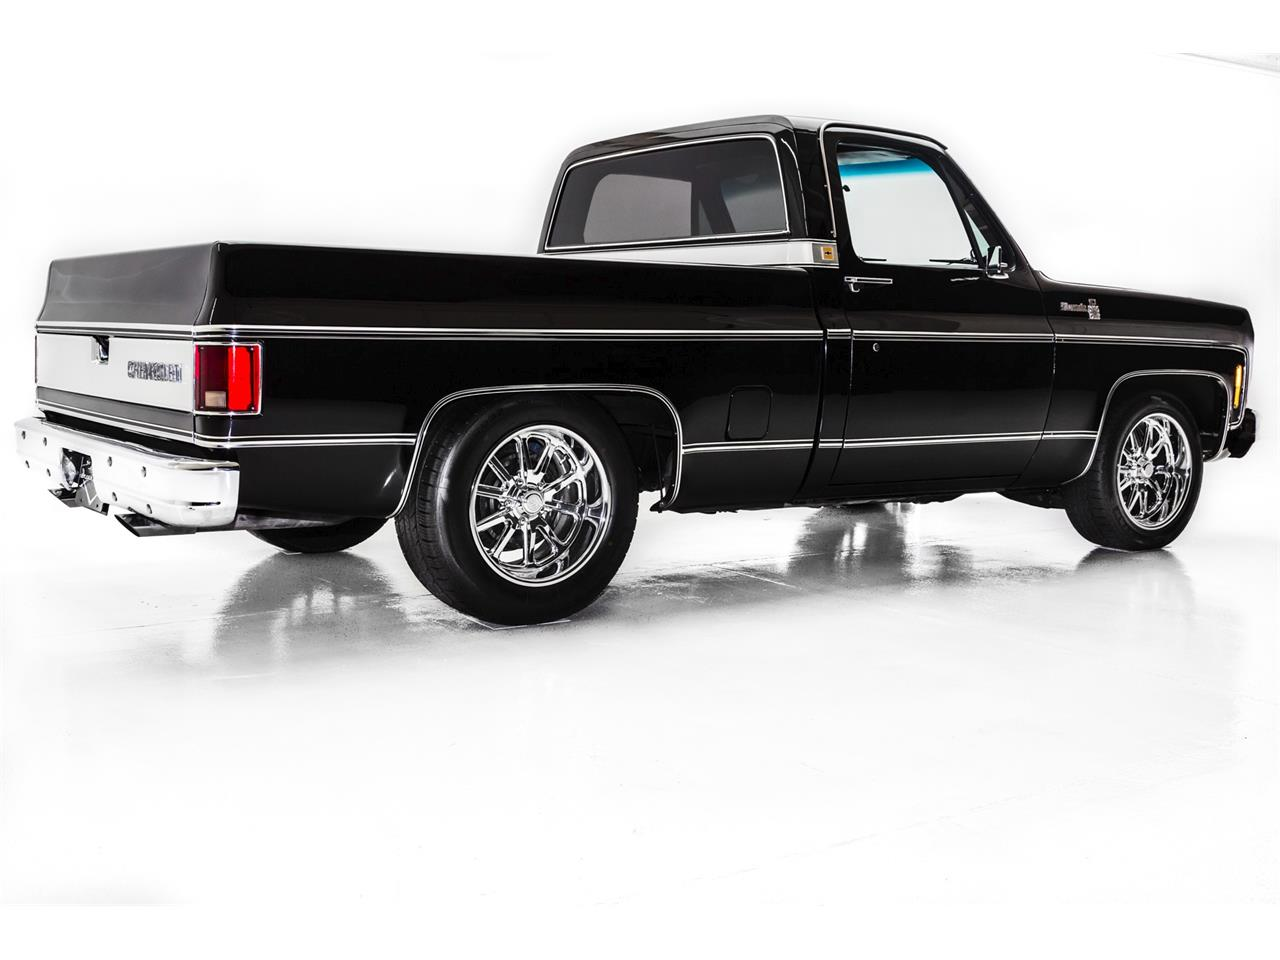 Large Picture of '78 Chevrolet Pickup located in Iowa - $29,900.00 - LD4Q